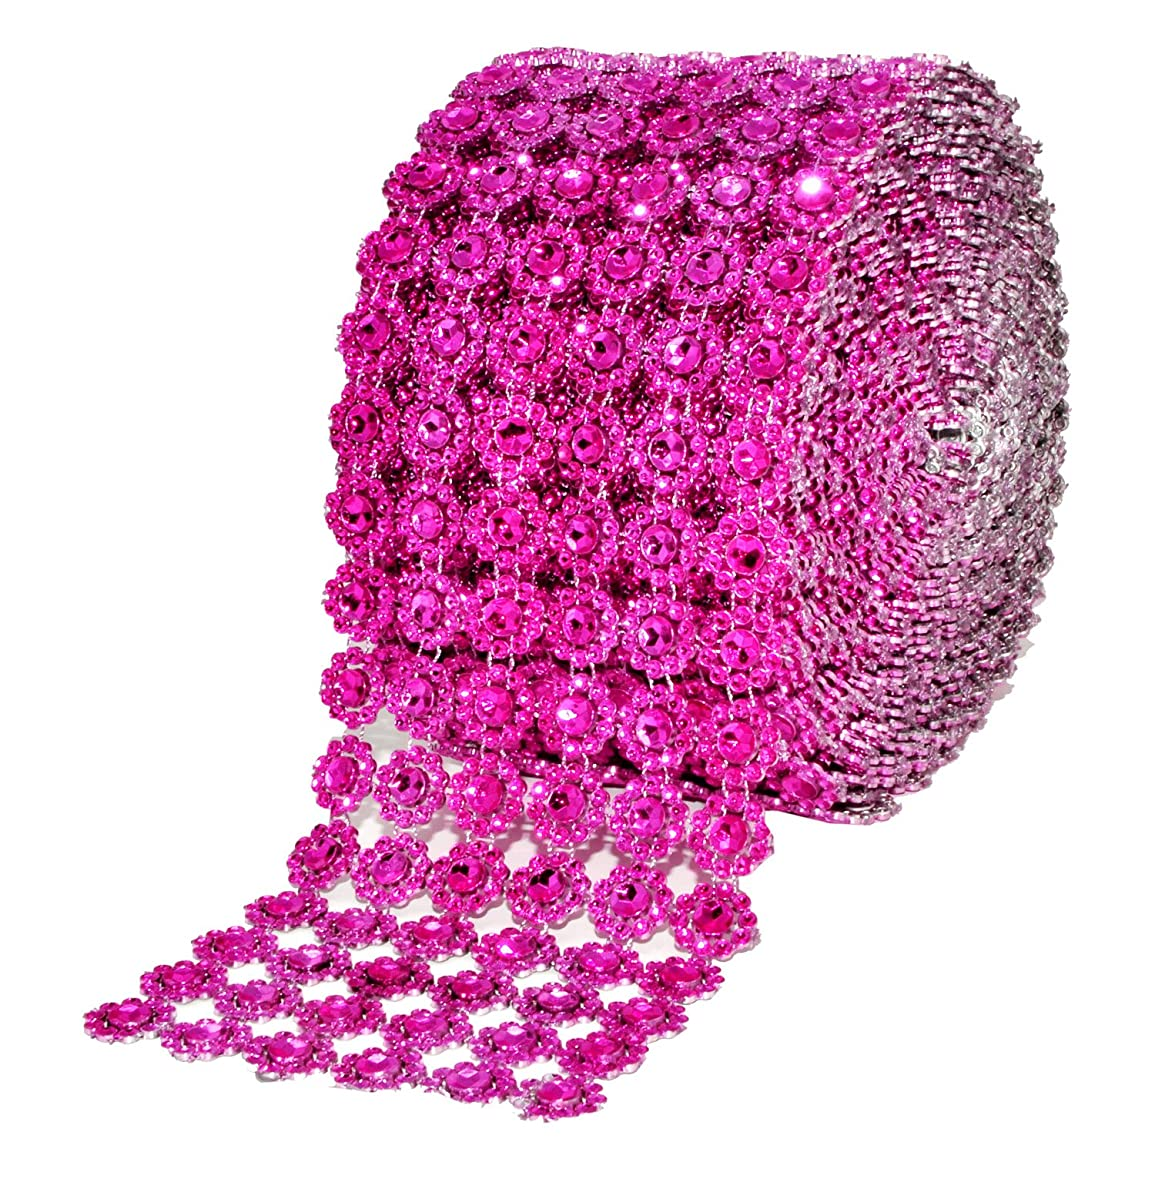 Mandala Crafts Faux Diamond Bling Wrap, Faux Rhinestone Crystal Mesh Ribbon Roll for Wedding, Party, Centerpiece, Cake, Vase Sparkling Decoration (Flower Pattern 4 Inches 10 Yards, Hot Pink)